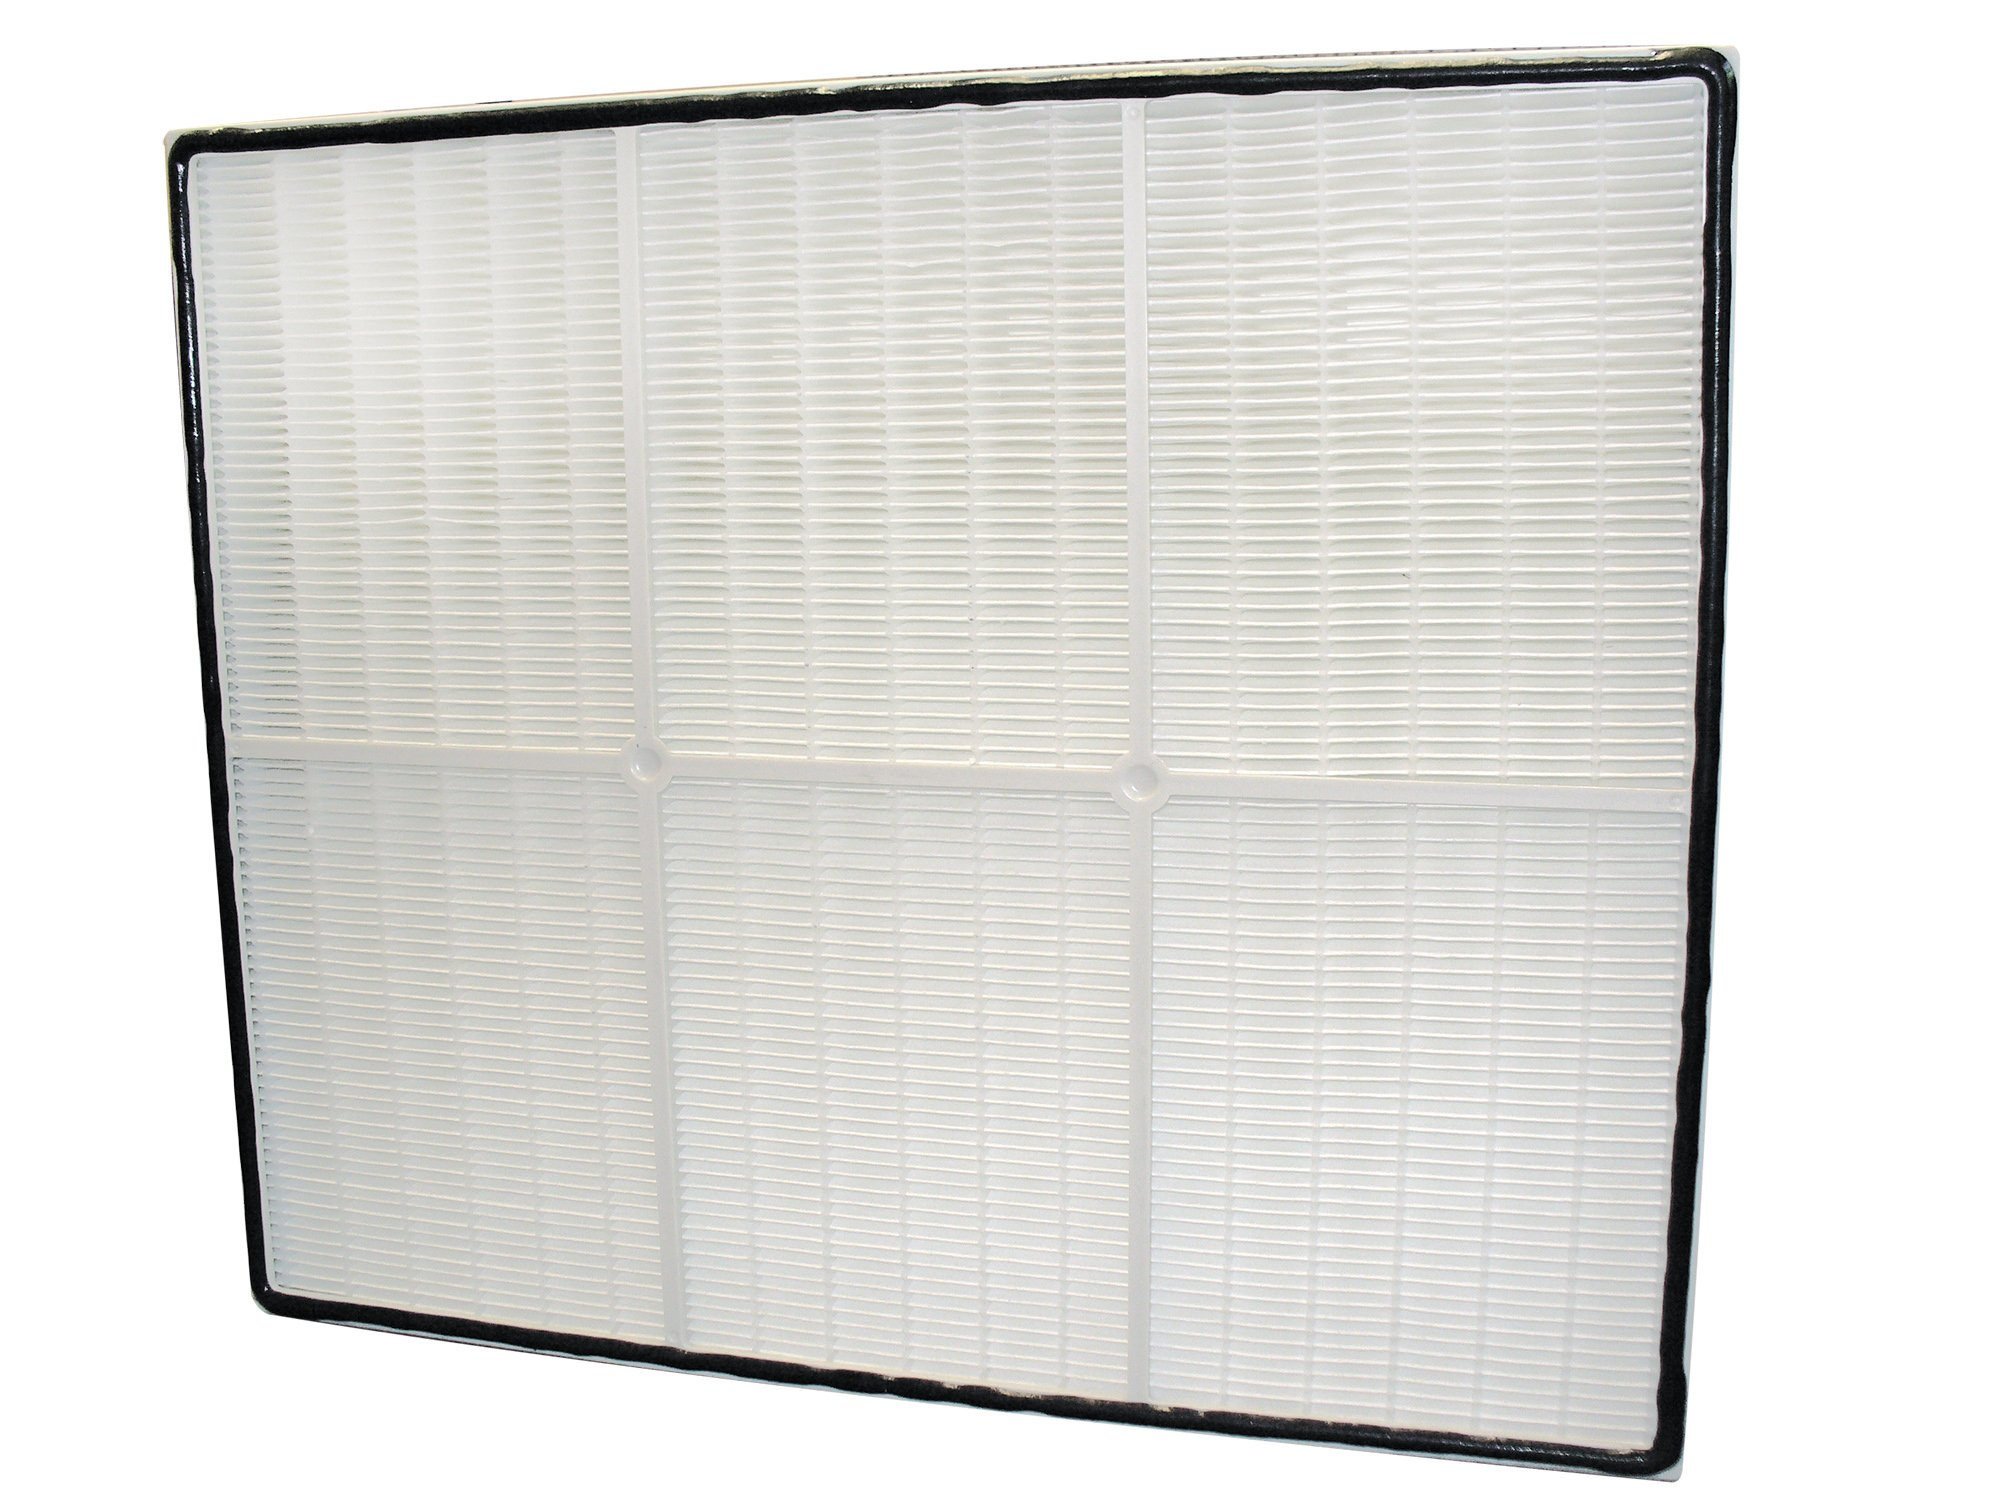 Janitized JAN-HVAC140 Dri-Eaz Defendair HEPA 500 Filter, OEM# F321 (1 by Janitized